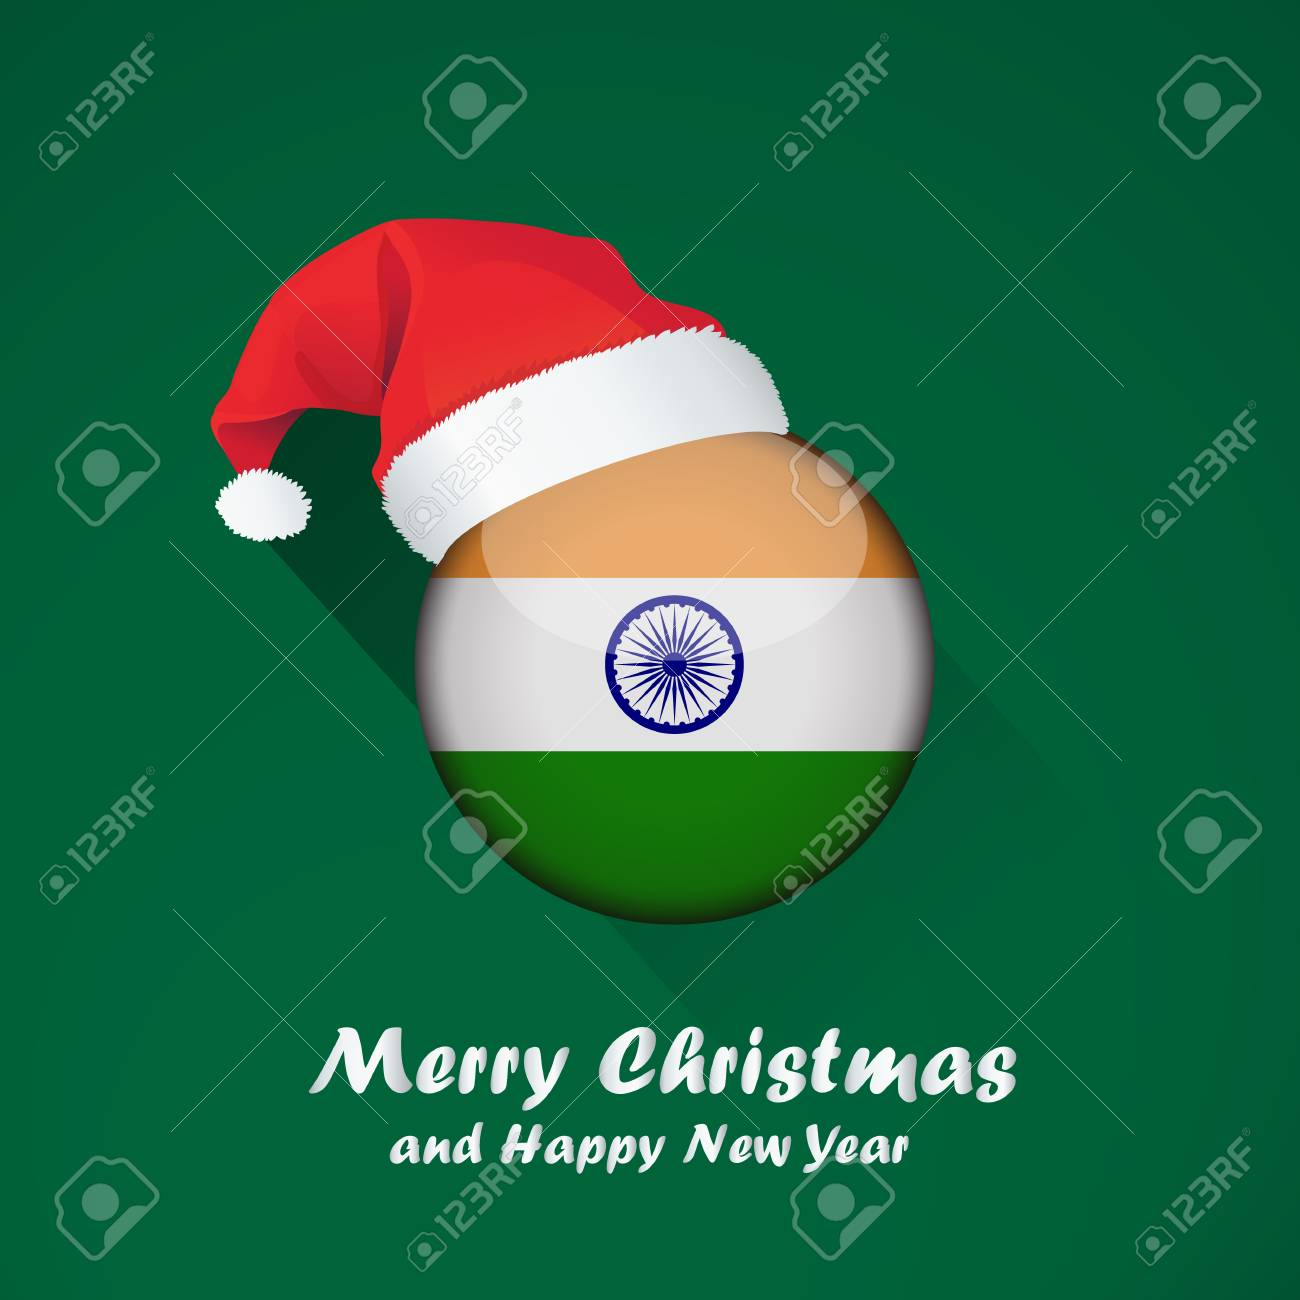 flag of india merry christmas and happy new year background design with glossy round flag